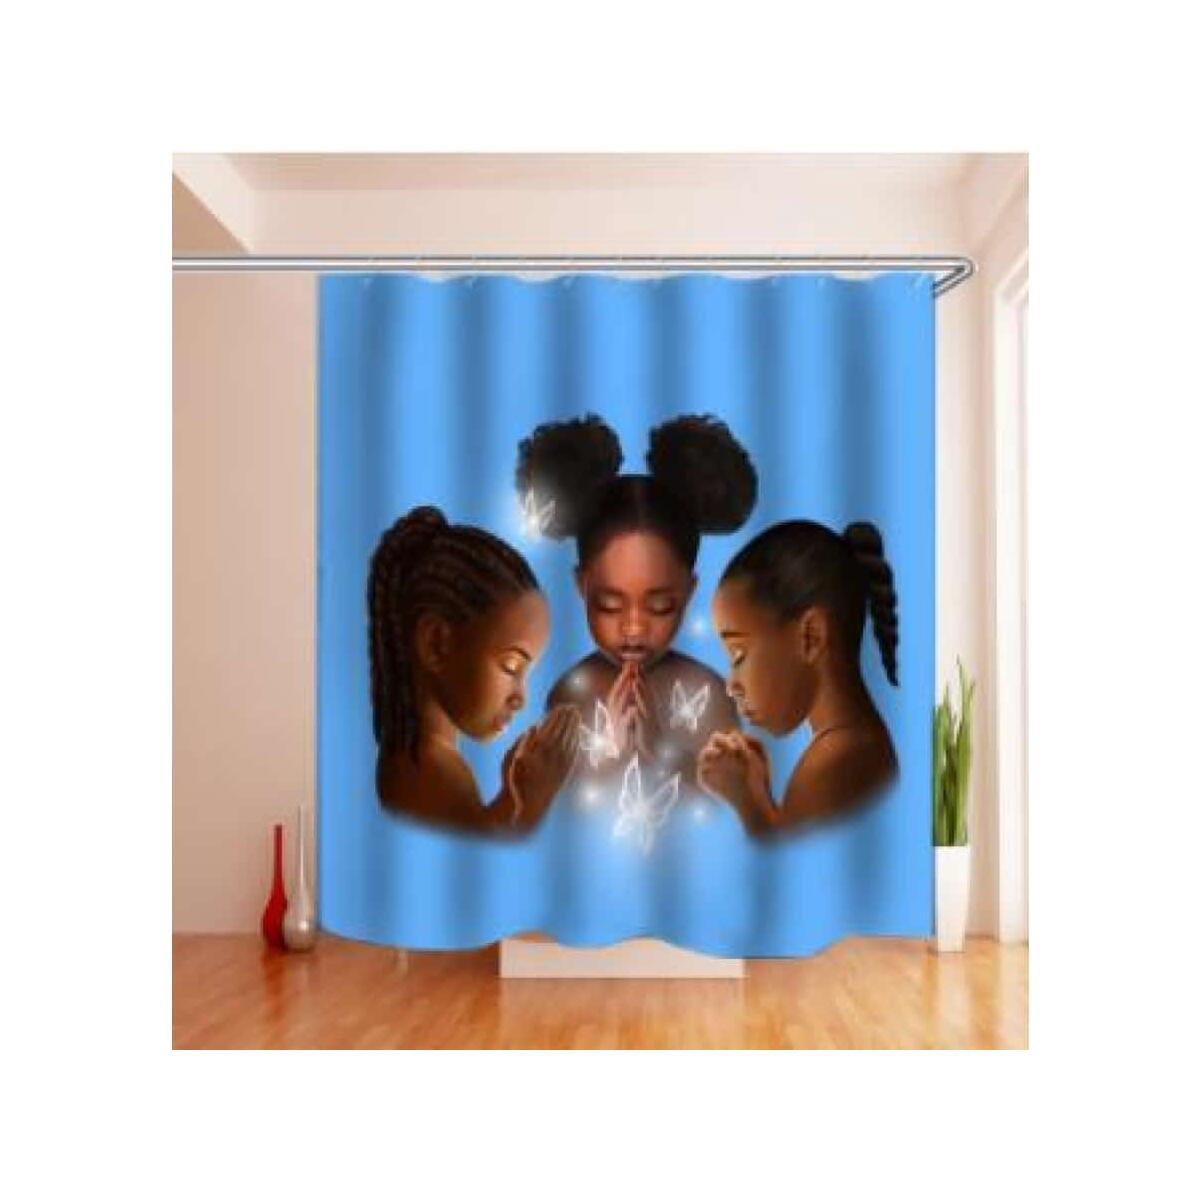 African American Shower Cutain Woman Abstract Print Waterproof Mildew Resistant Fabric Polyester, 180x200 / 5